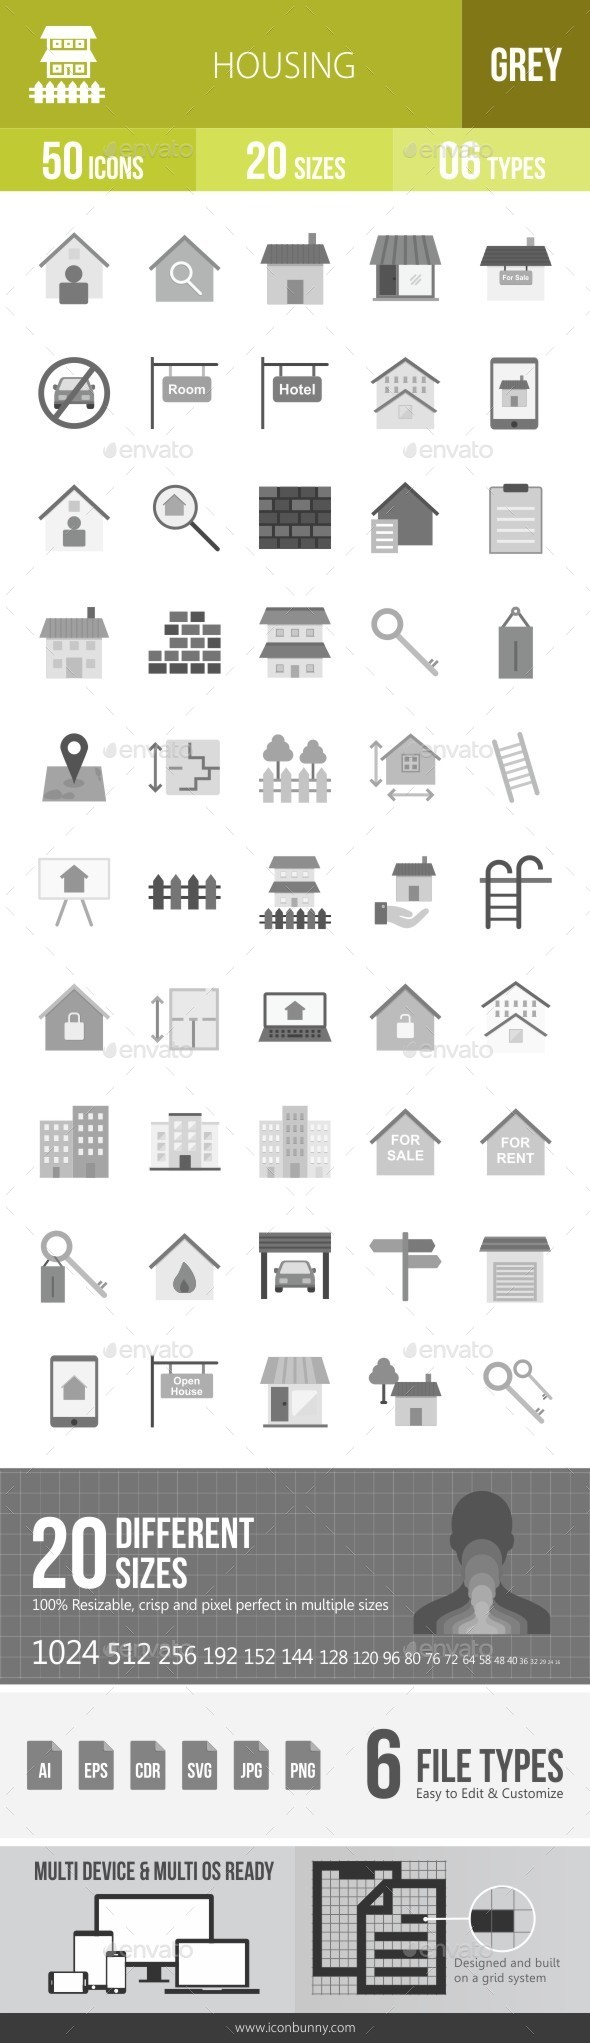 Housing Greyscale Icons - Icons